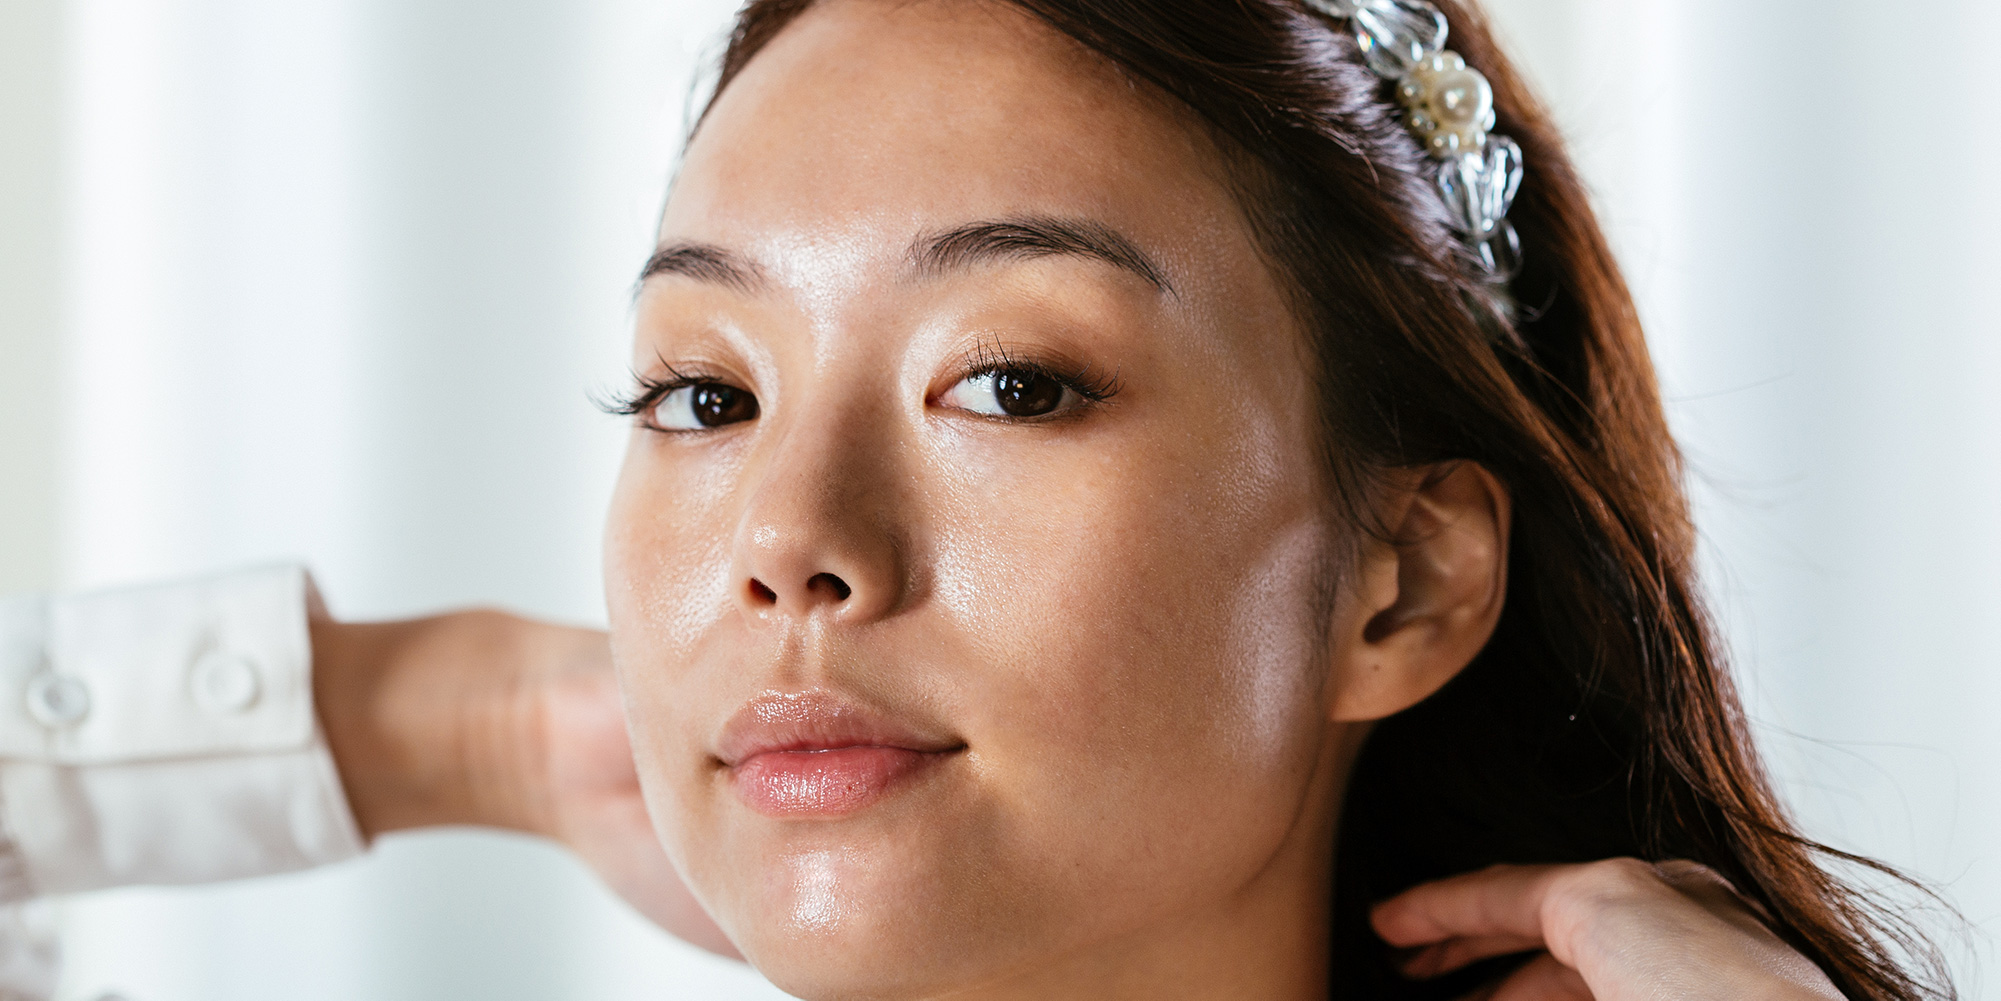 Get That Bridal Glow: A Wedding Skincare Routine